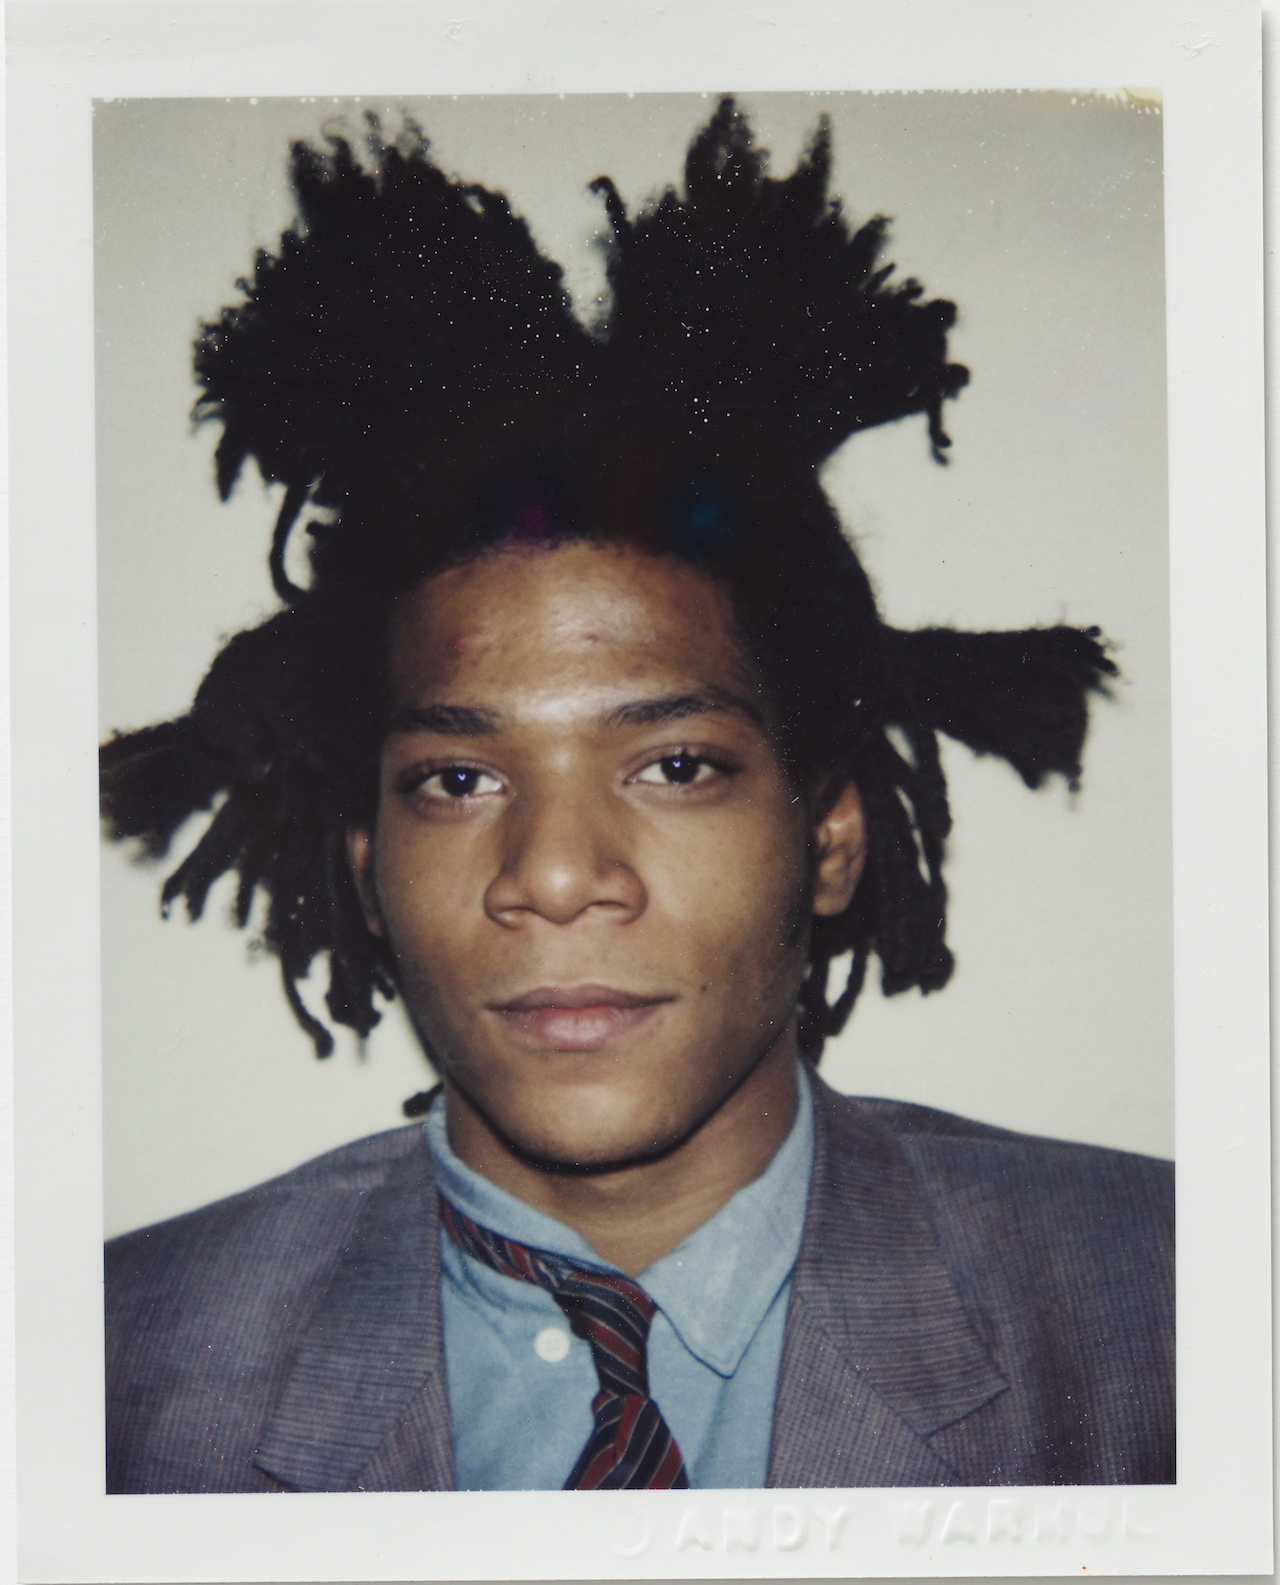 andy-warhol-jean-michel-basquiat-1982-polacolor-er-10_8-x-8_5-cm_-2018-the-andy-warhol-foundation-for-the-visual-arts-inc_-licensed-by-dacs-london_-courtesy-bastian-london.jpg